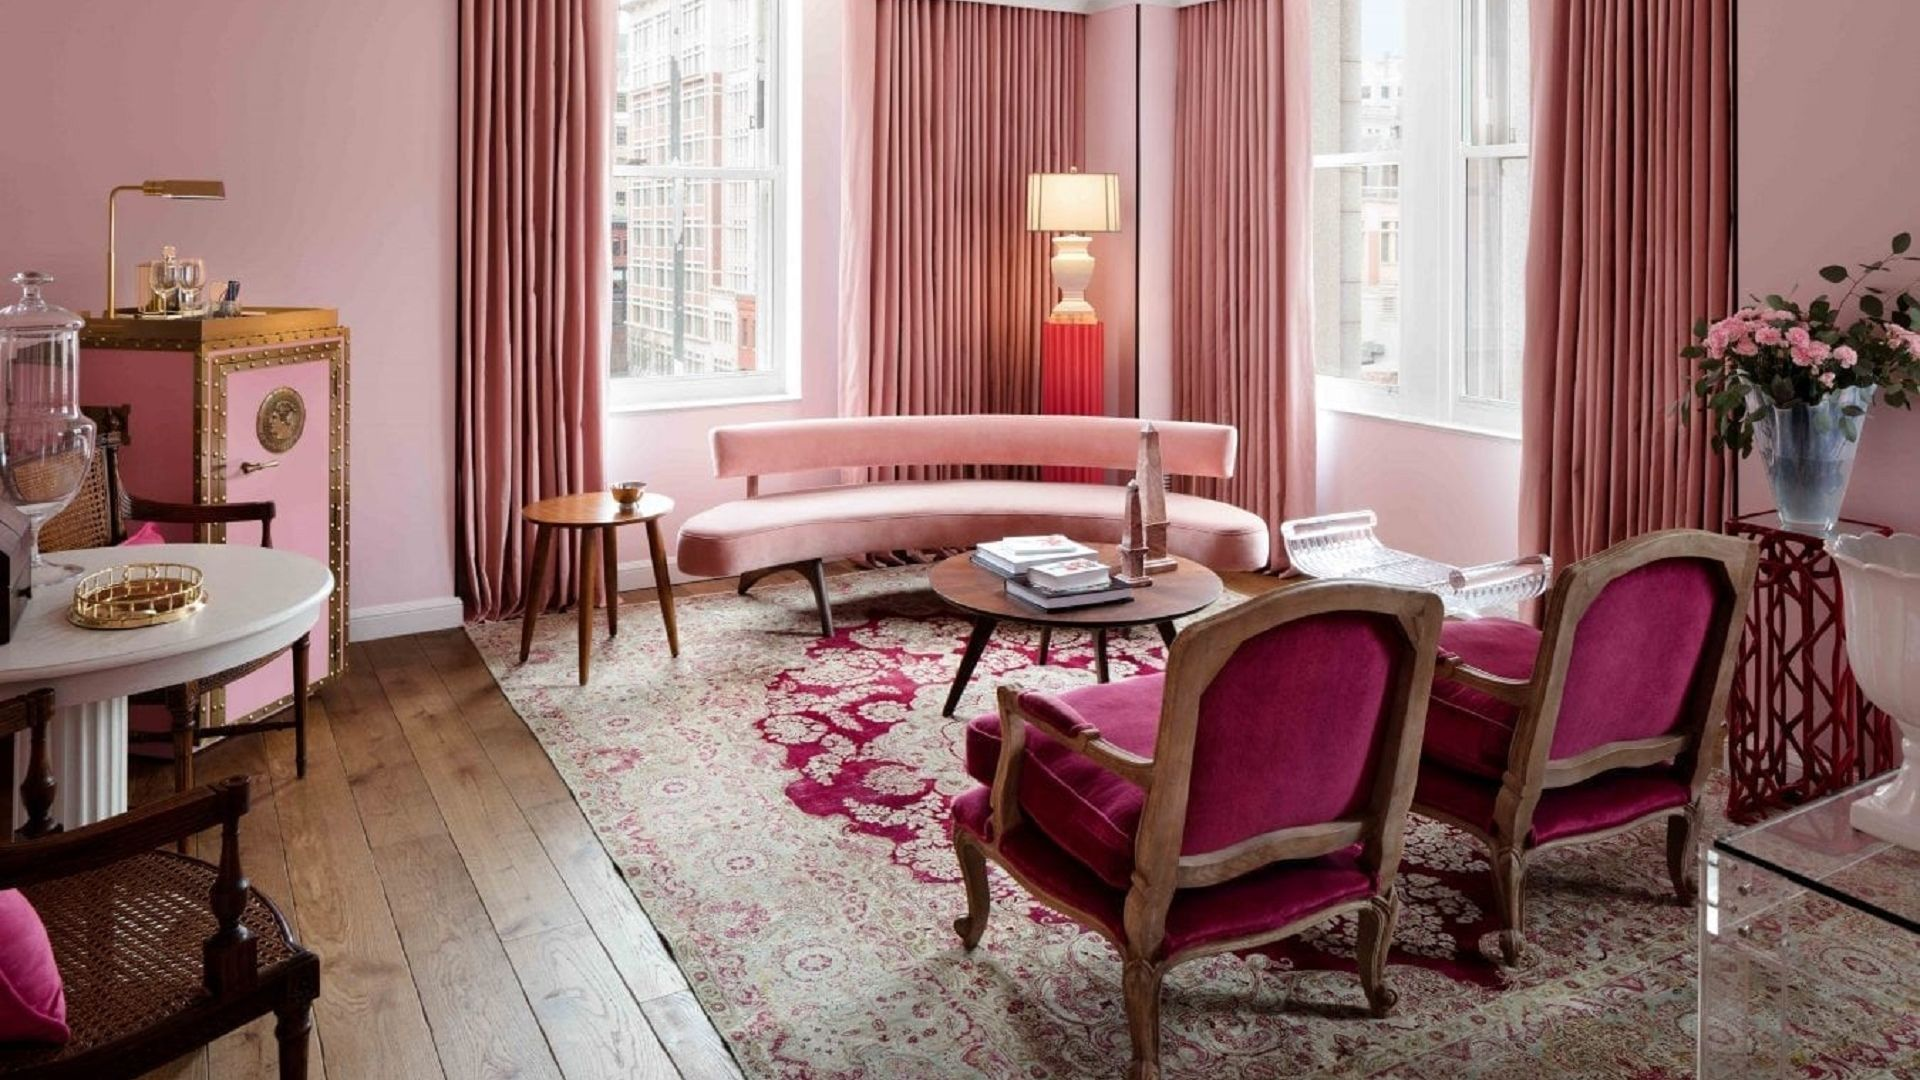 A Living Room Filled With Furniture And A Pink Chair